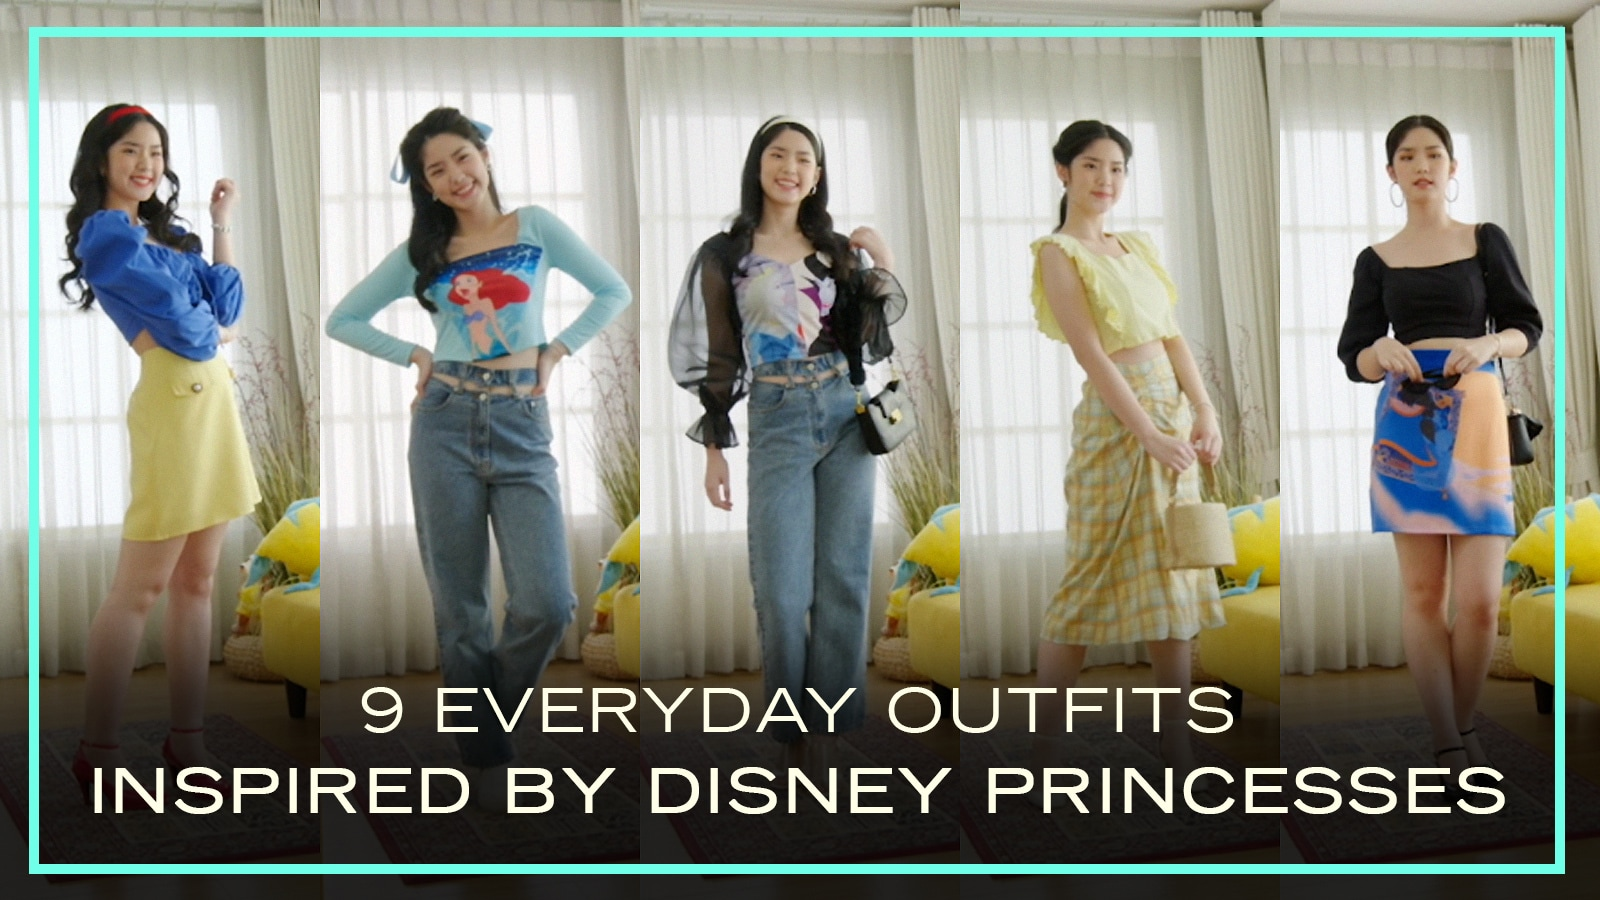 9 EVERYDAY OUTFITS INSPIRED BY DISNEY PRINCESSES